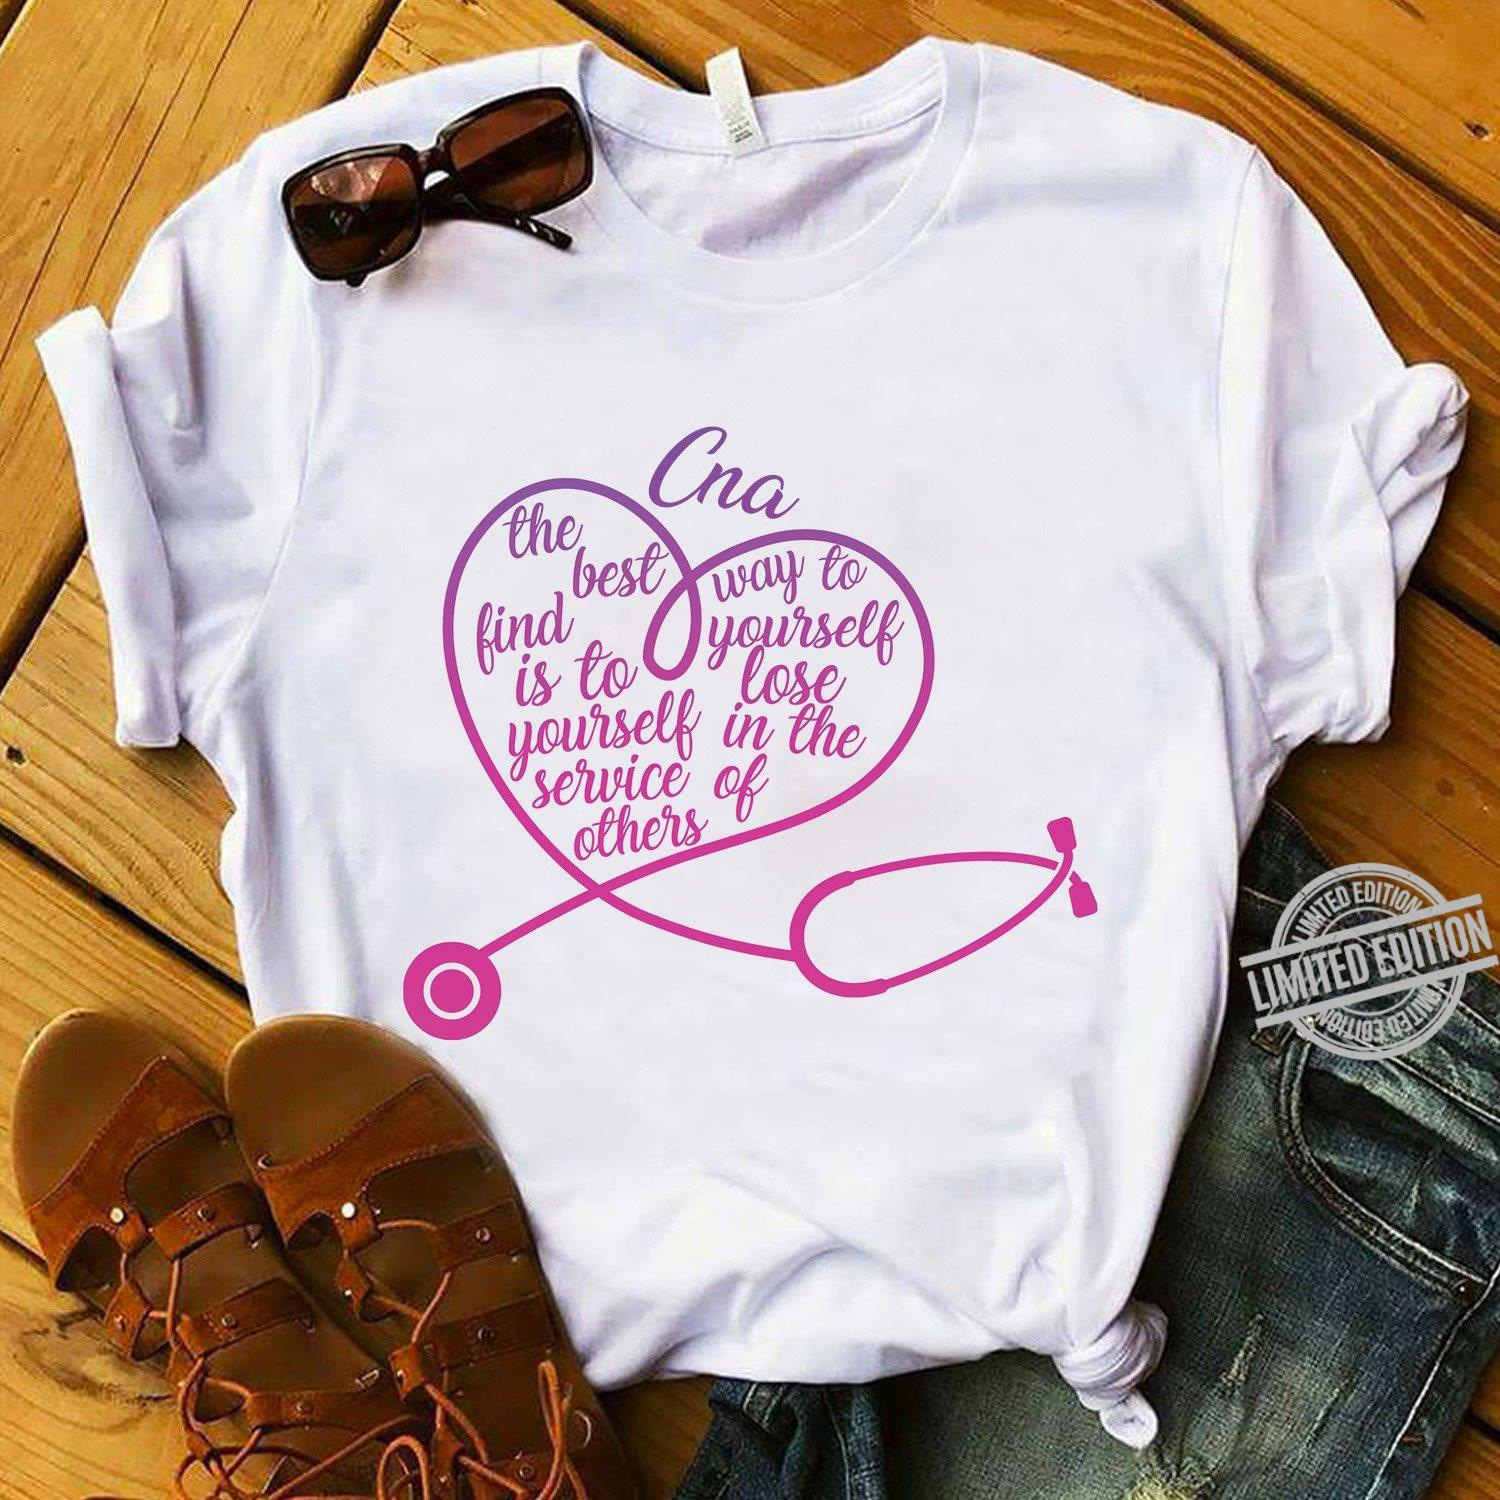 Cna The Best Find Is To Yourself Sevice Others Way To Yourself Lose In The Shirt